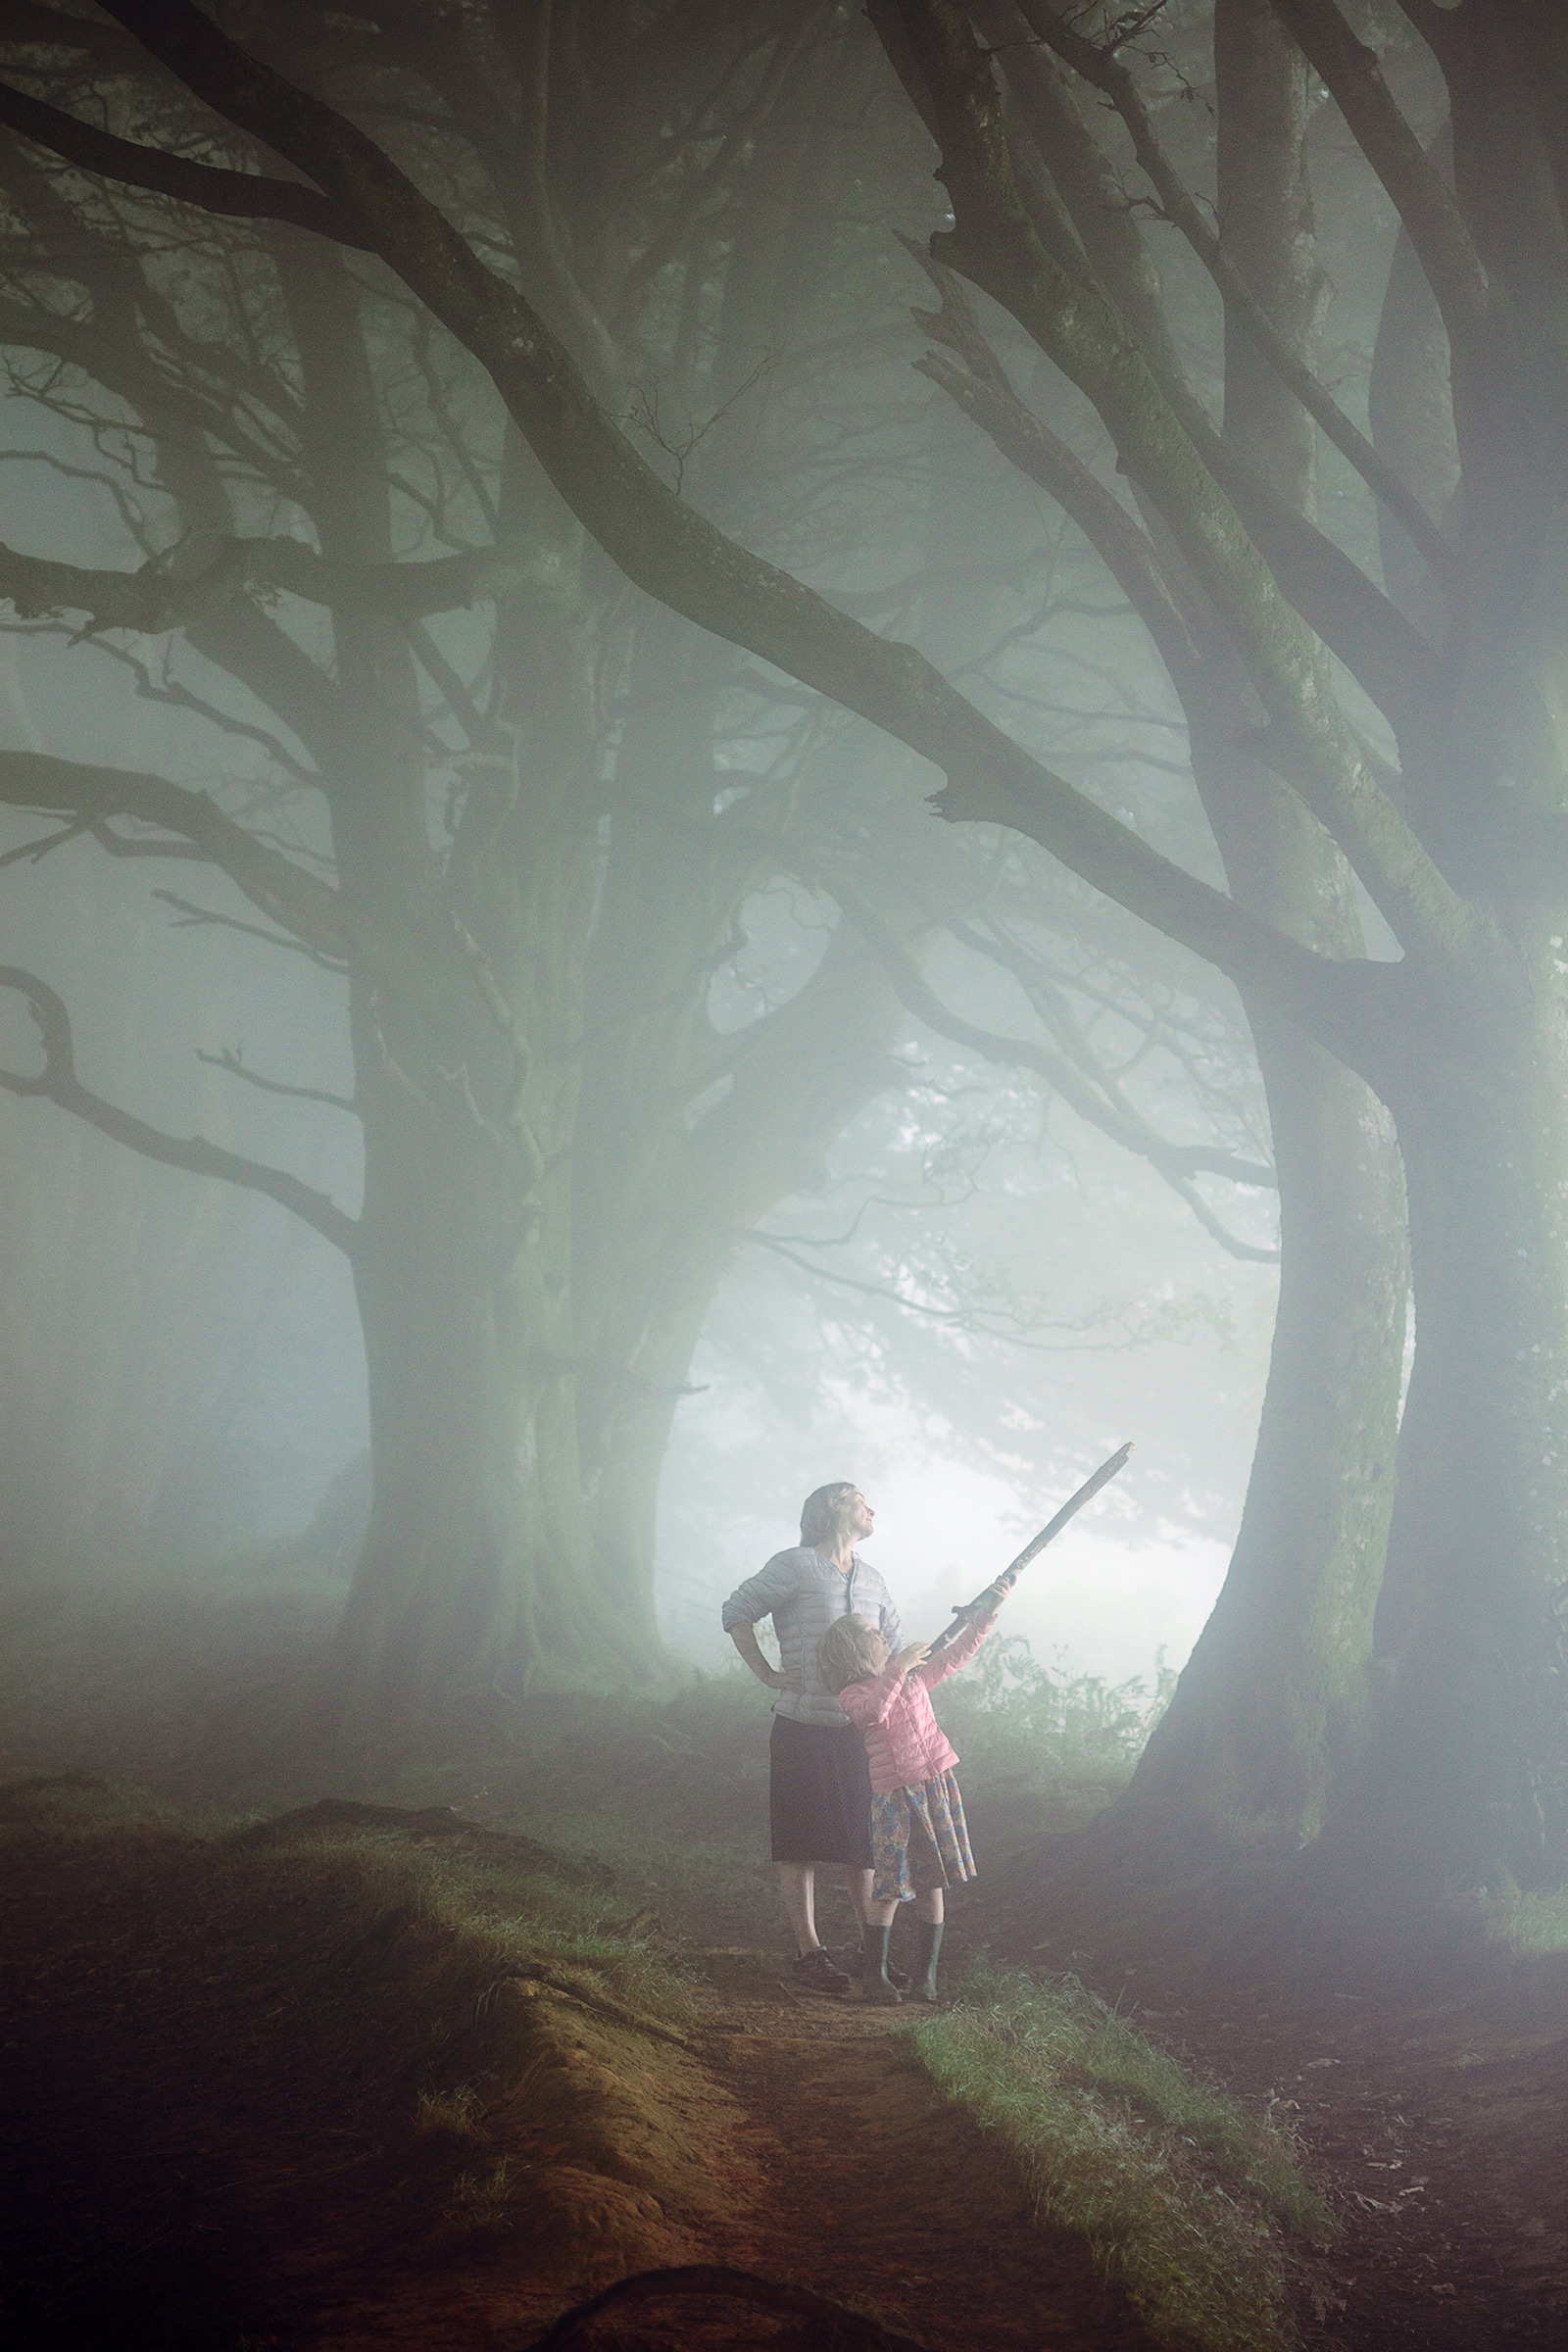 Becky and Suki, playing in the mist